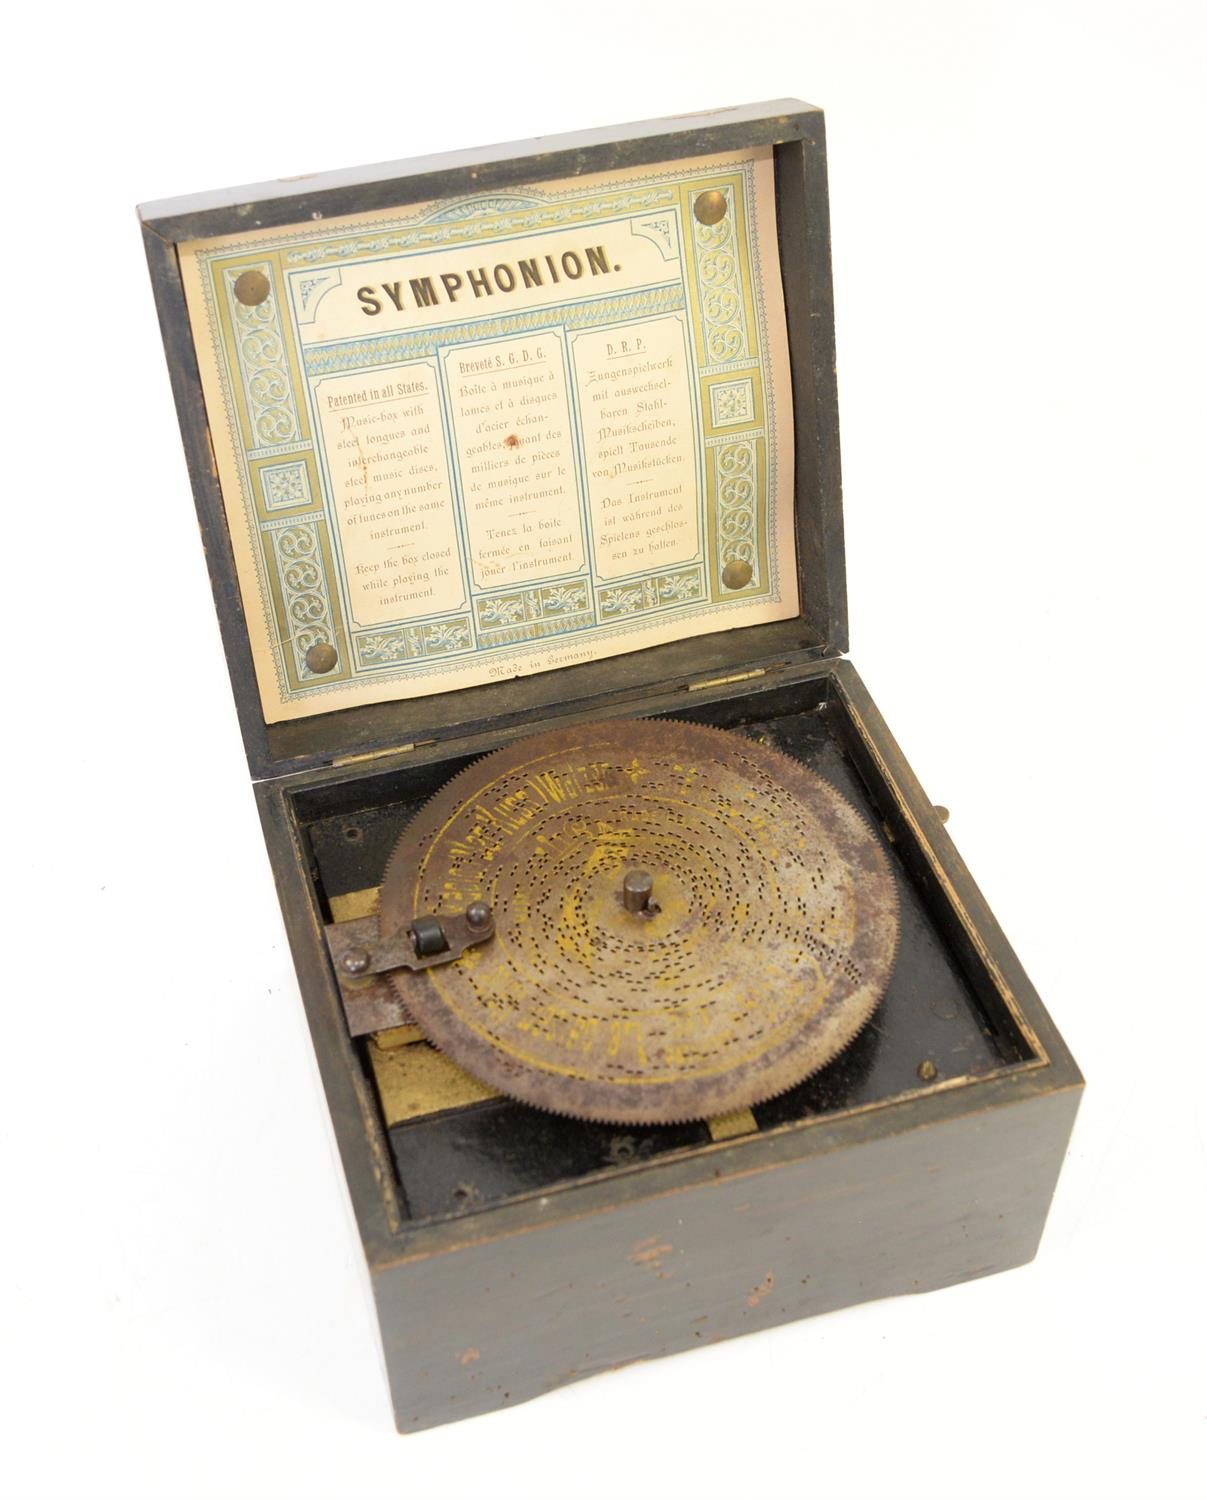 Late 19th century German Symphonion, with a single disc 14.5 cms, the box, 19.5 x 17 cms,